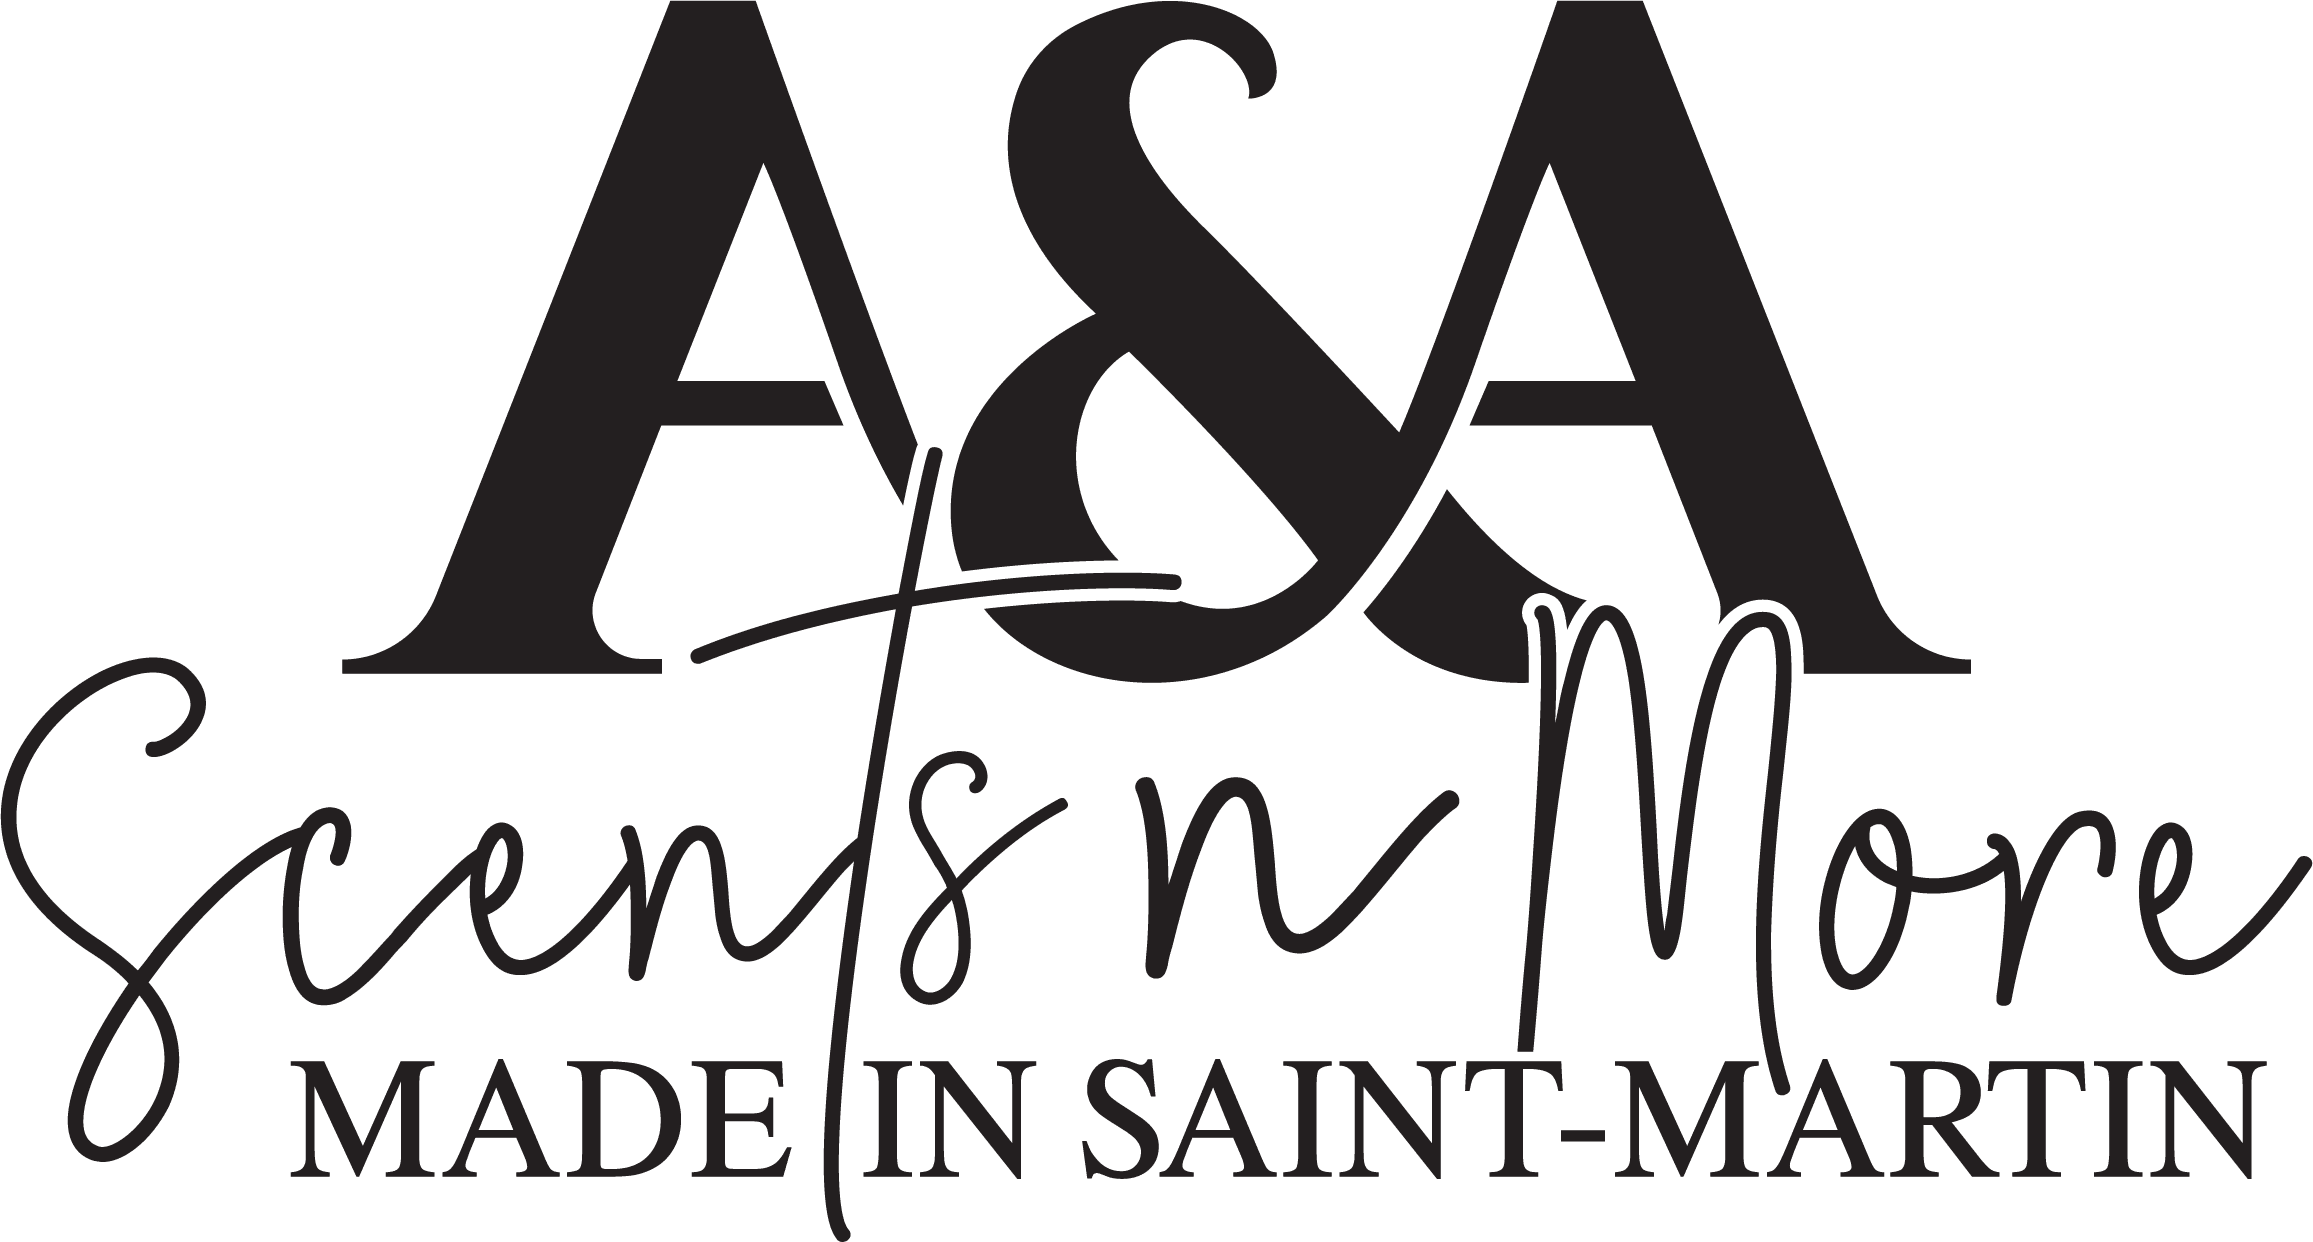 aasnm_logo